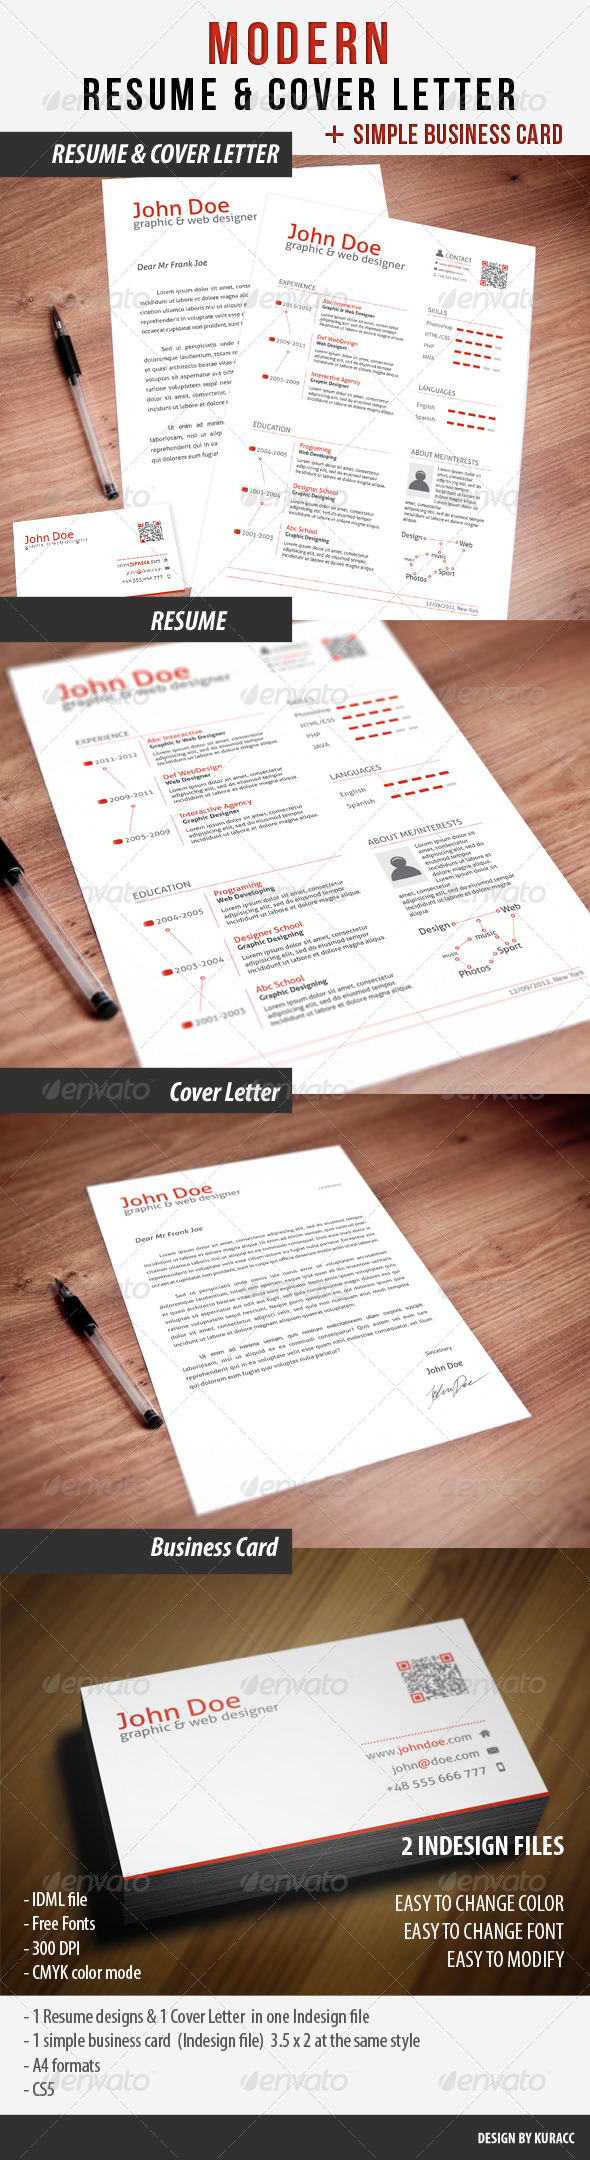 free indesign resume template. Black Bedroom Furniture Sets. Home Design Ideas